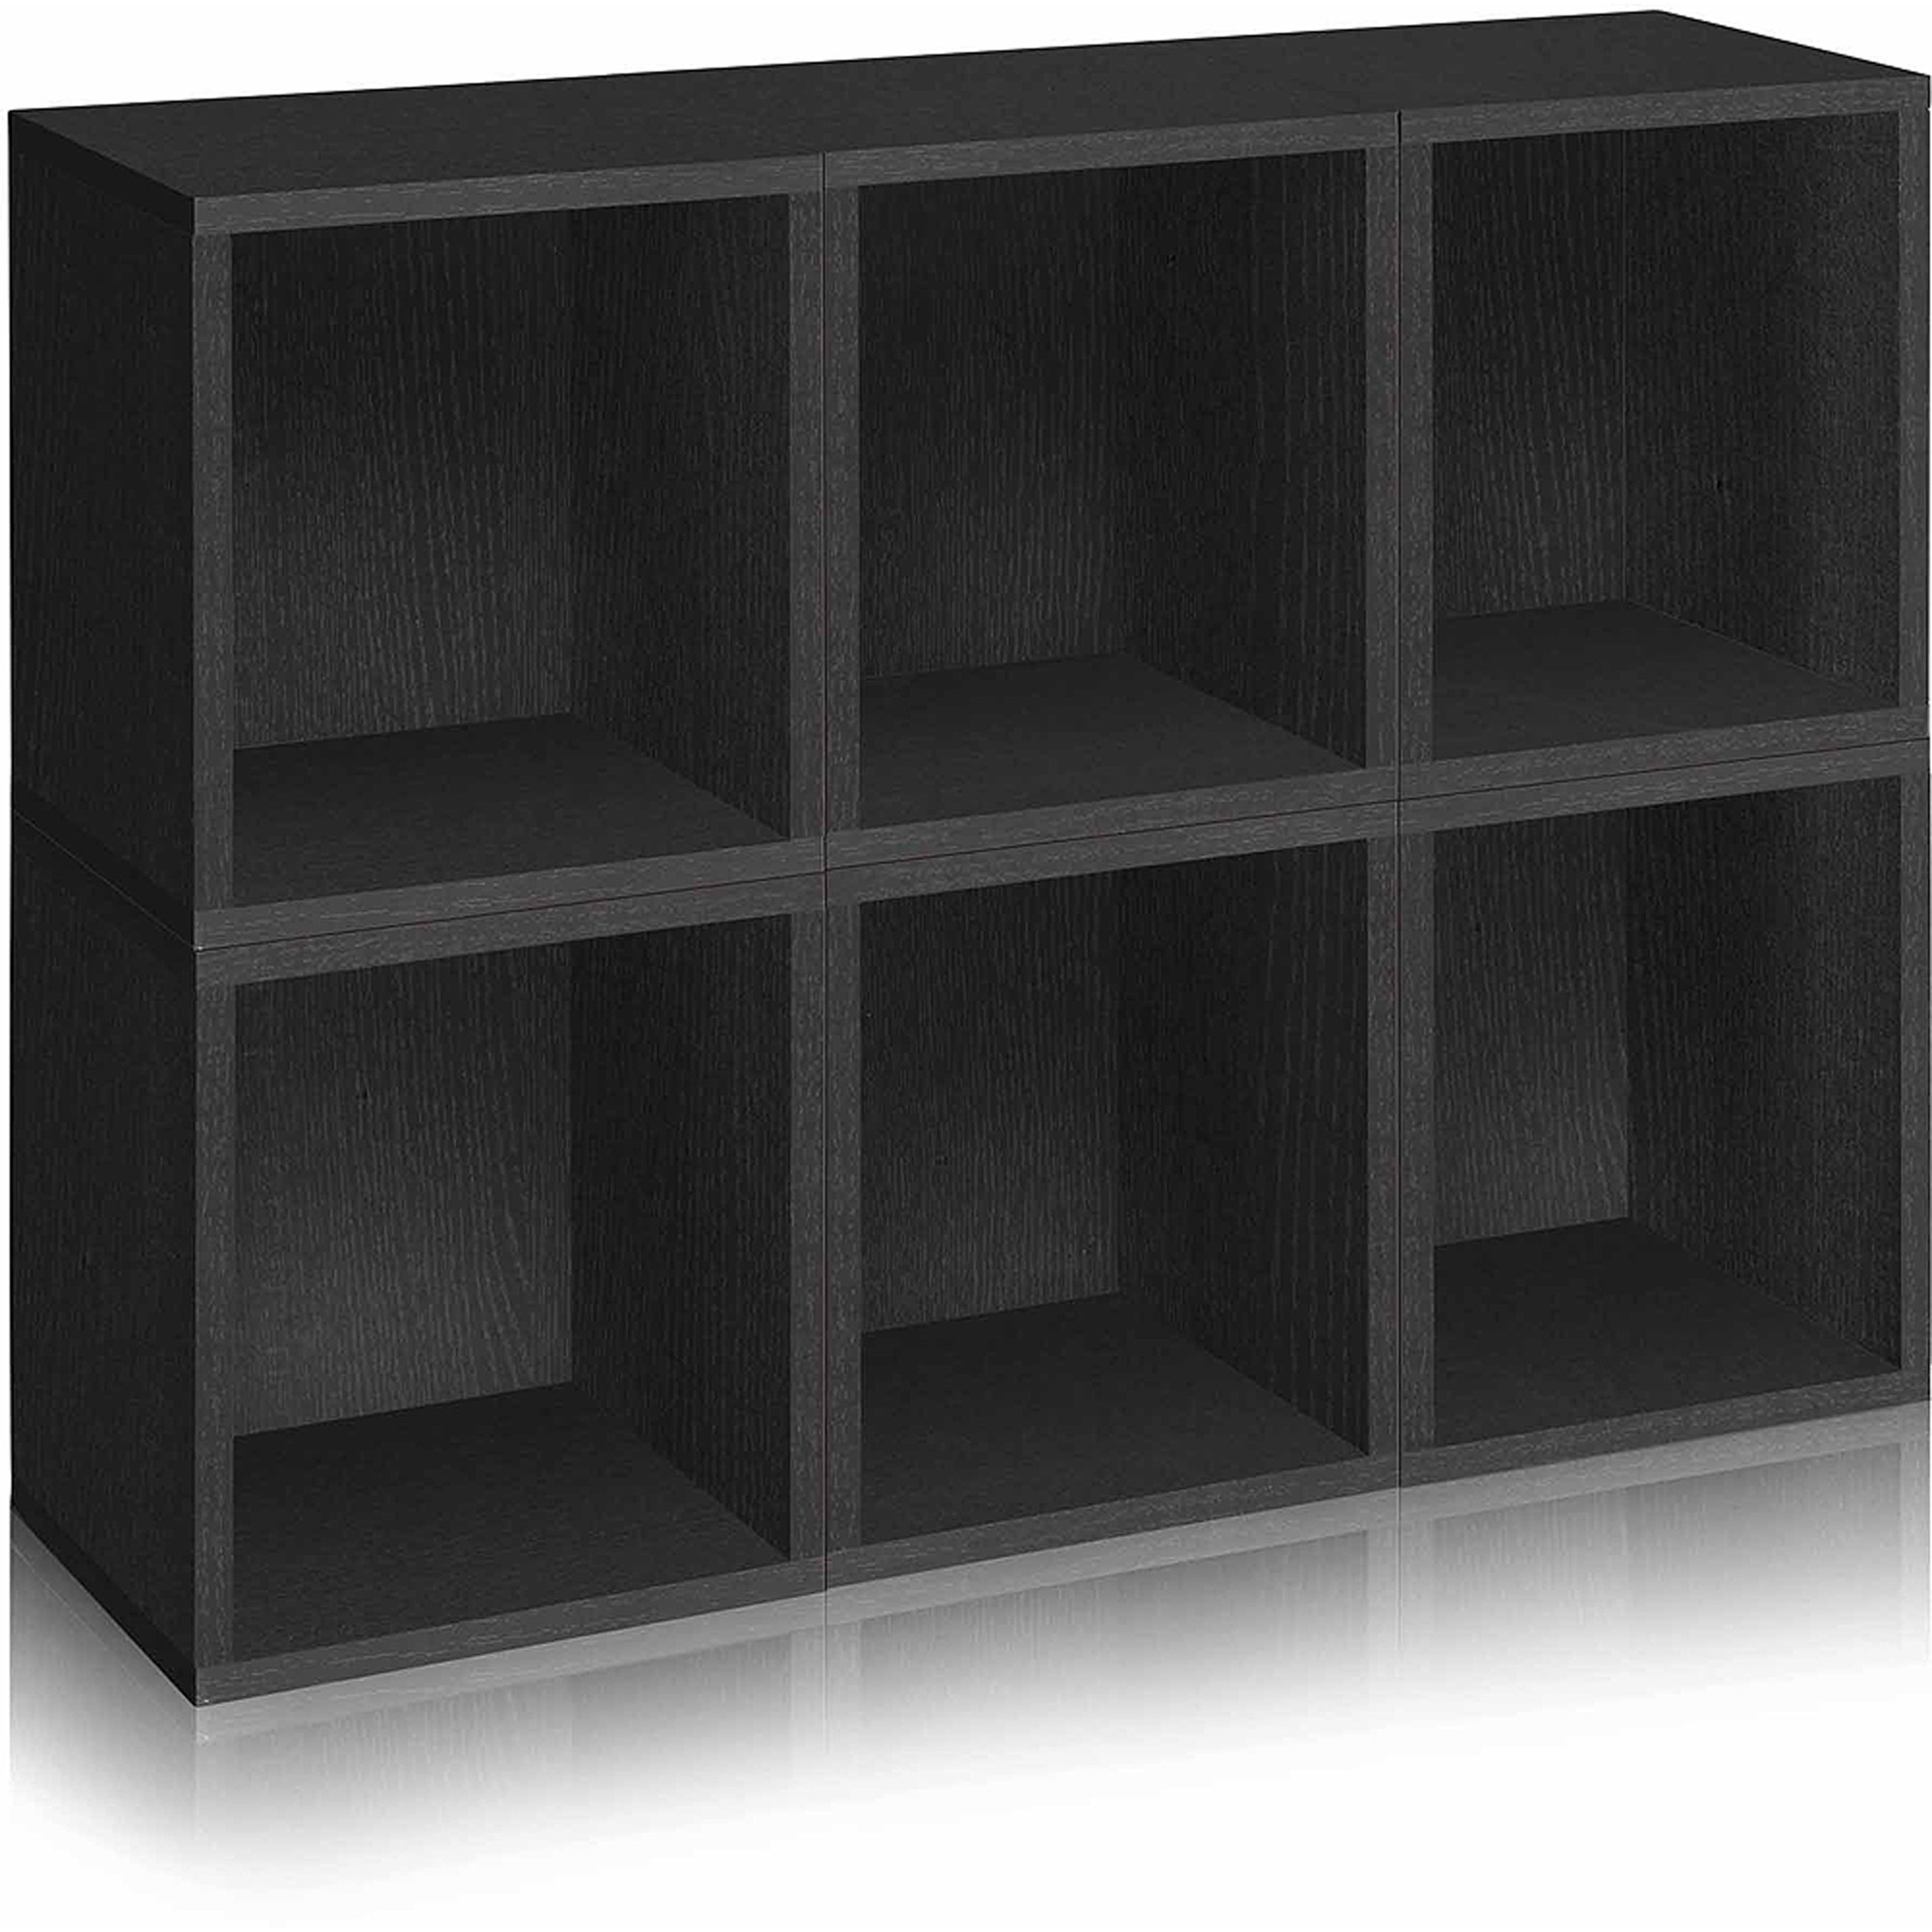 Way Basics Eco Stackable Modular Storage Cubes Plus, Black, 6-Pack